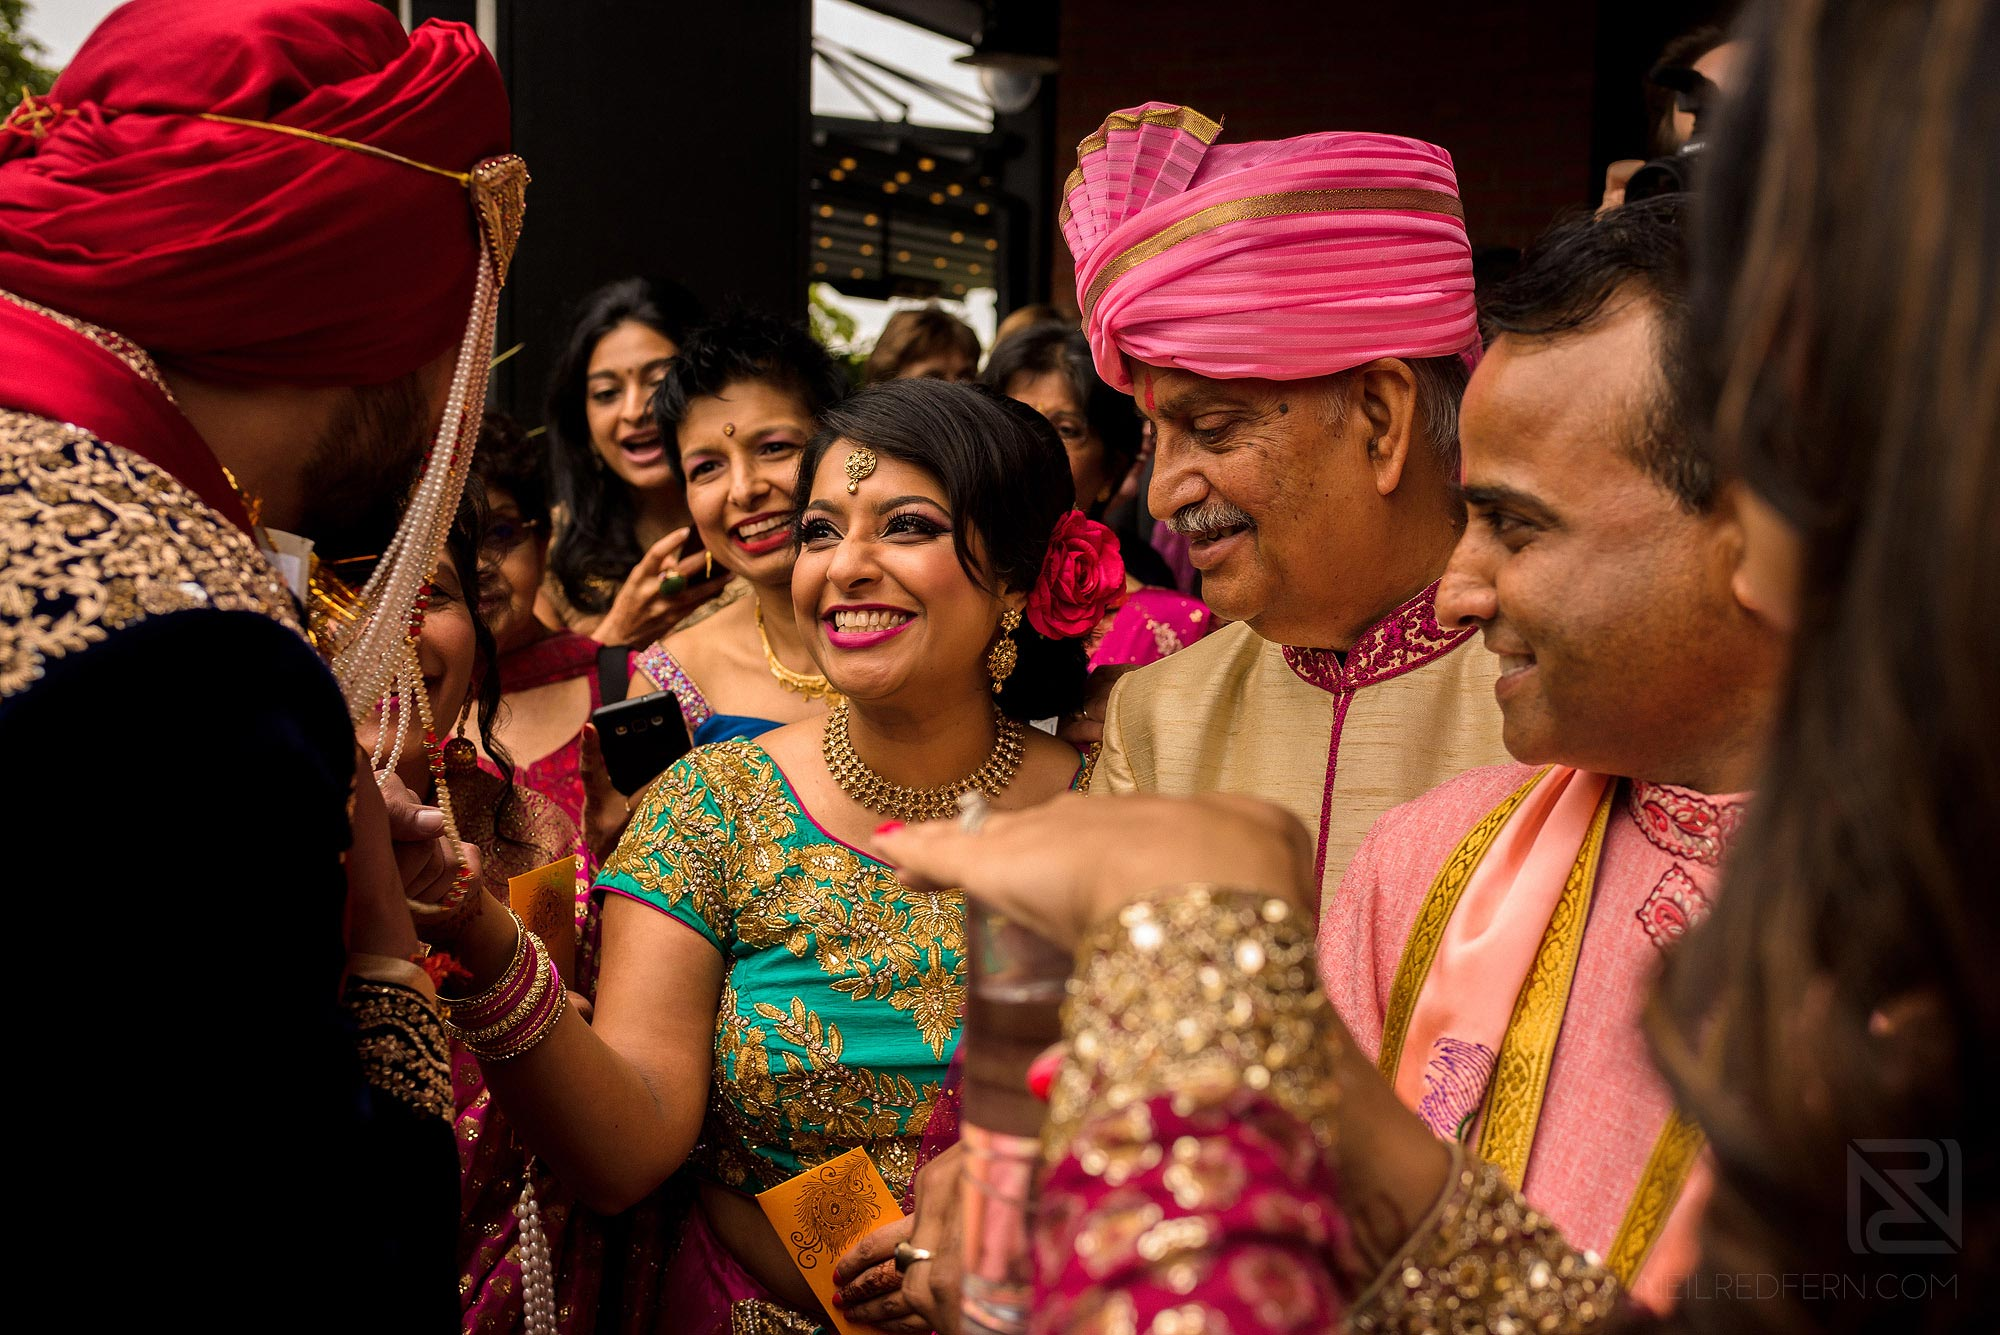 groom laughing with family members at Indian wedding